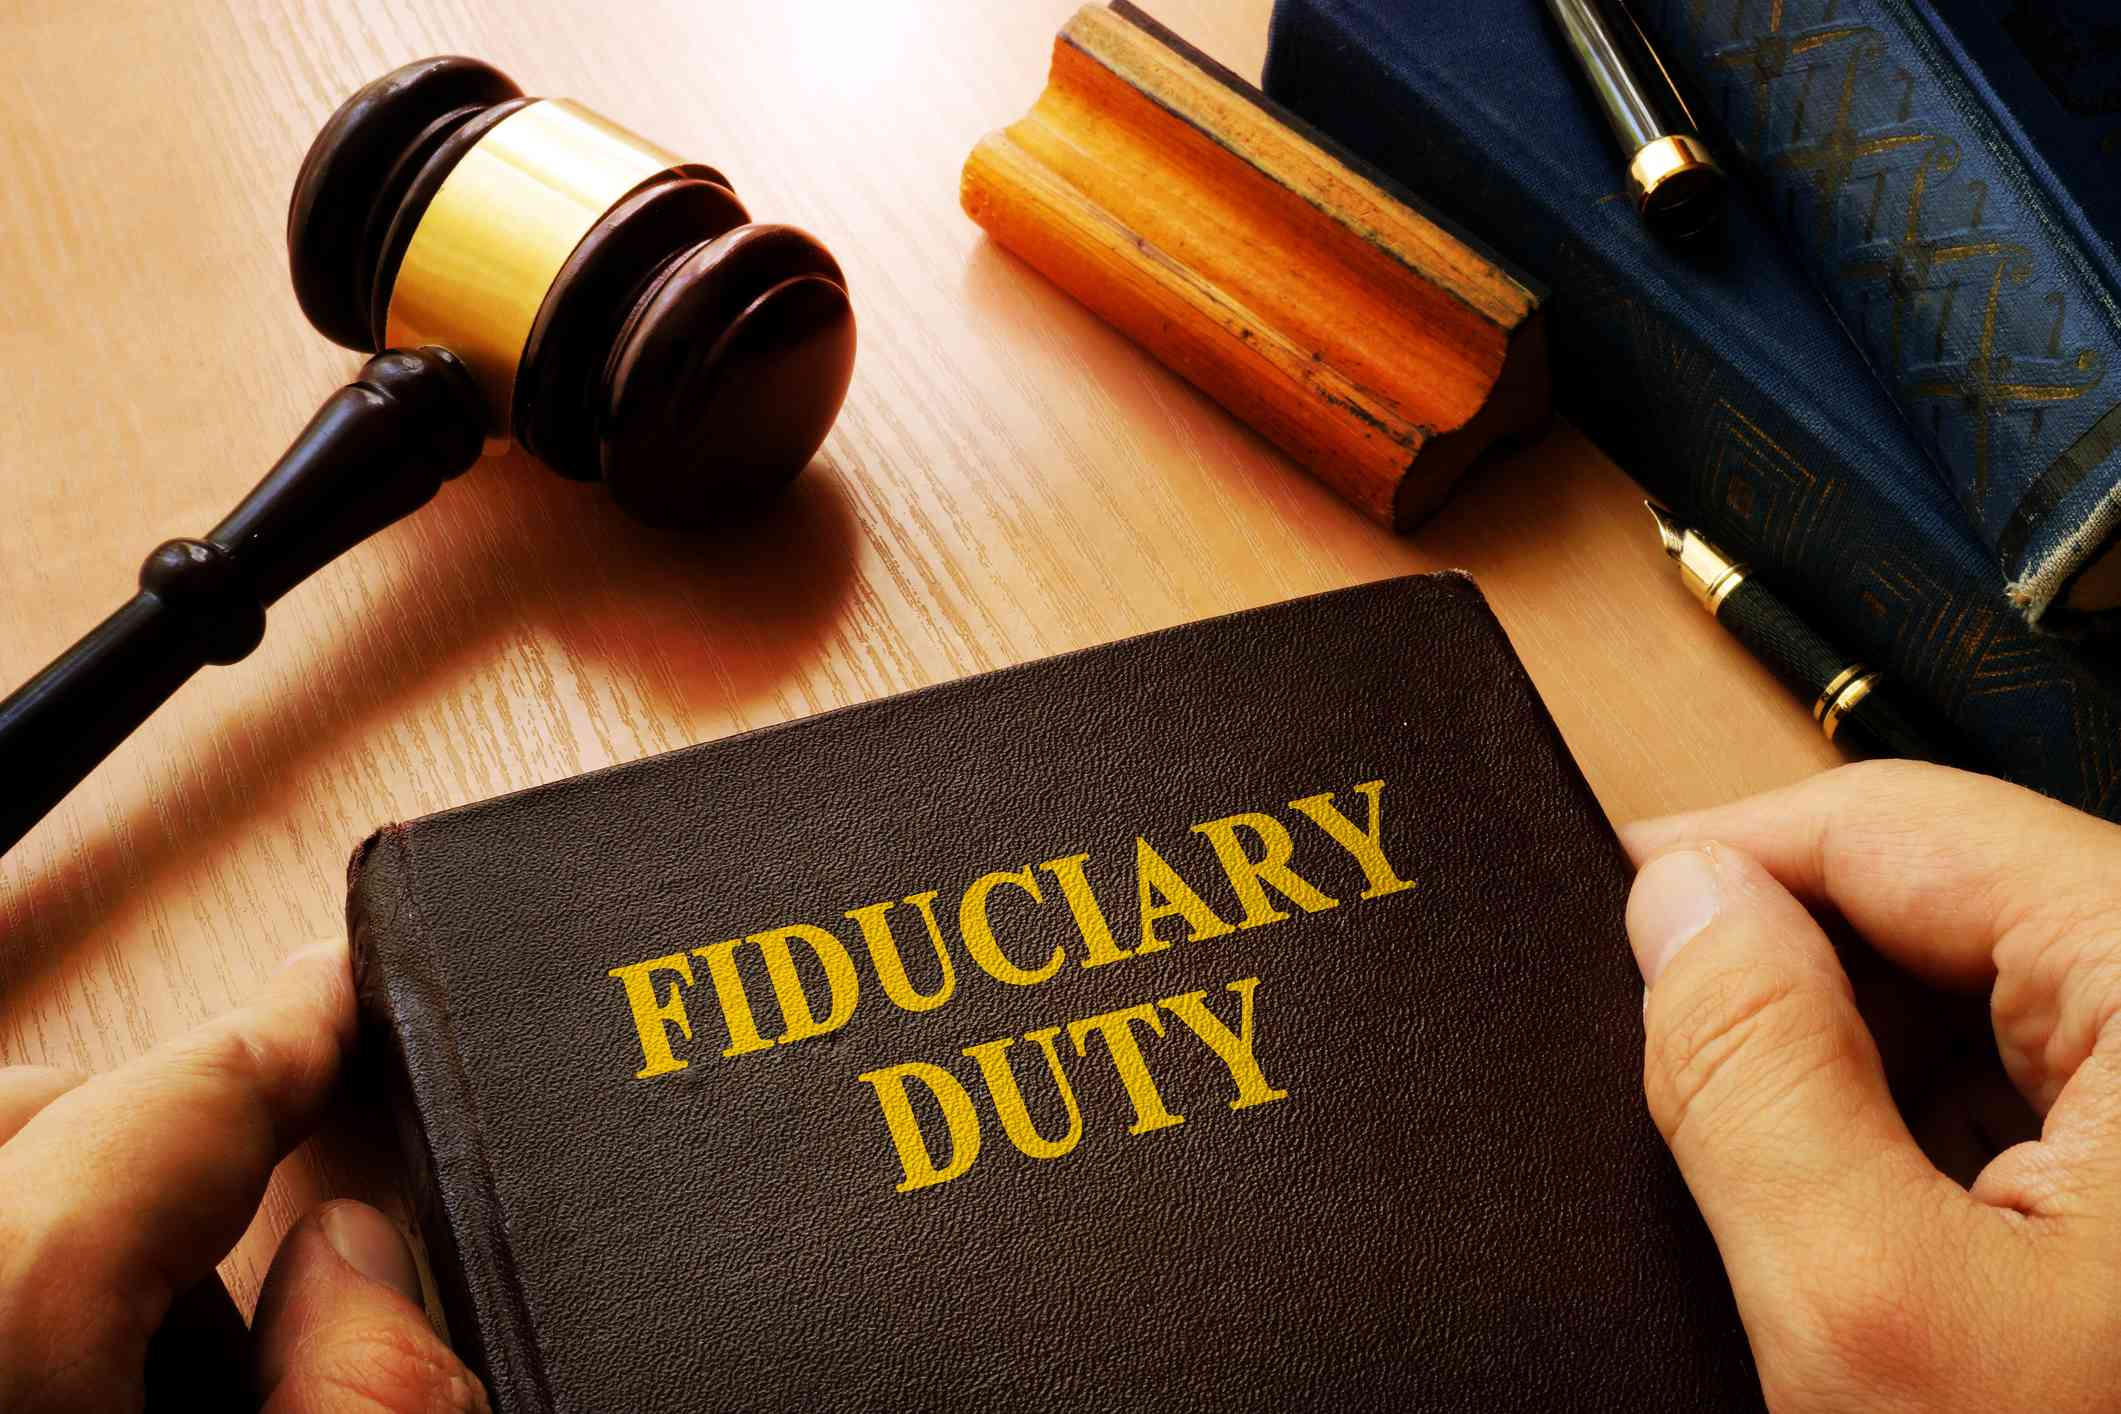 Aiding and abetting breach of fiduciary duty illinois department crypto currency charts live